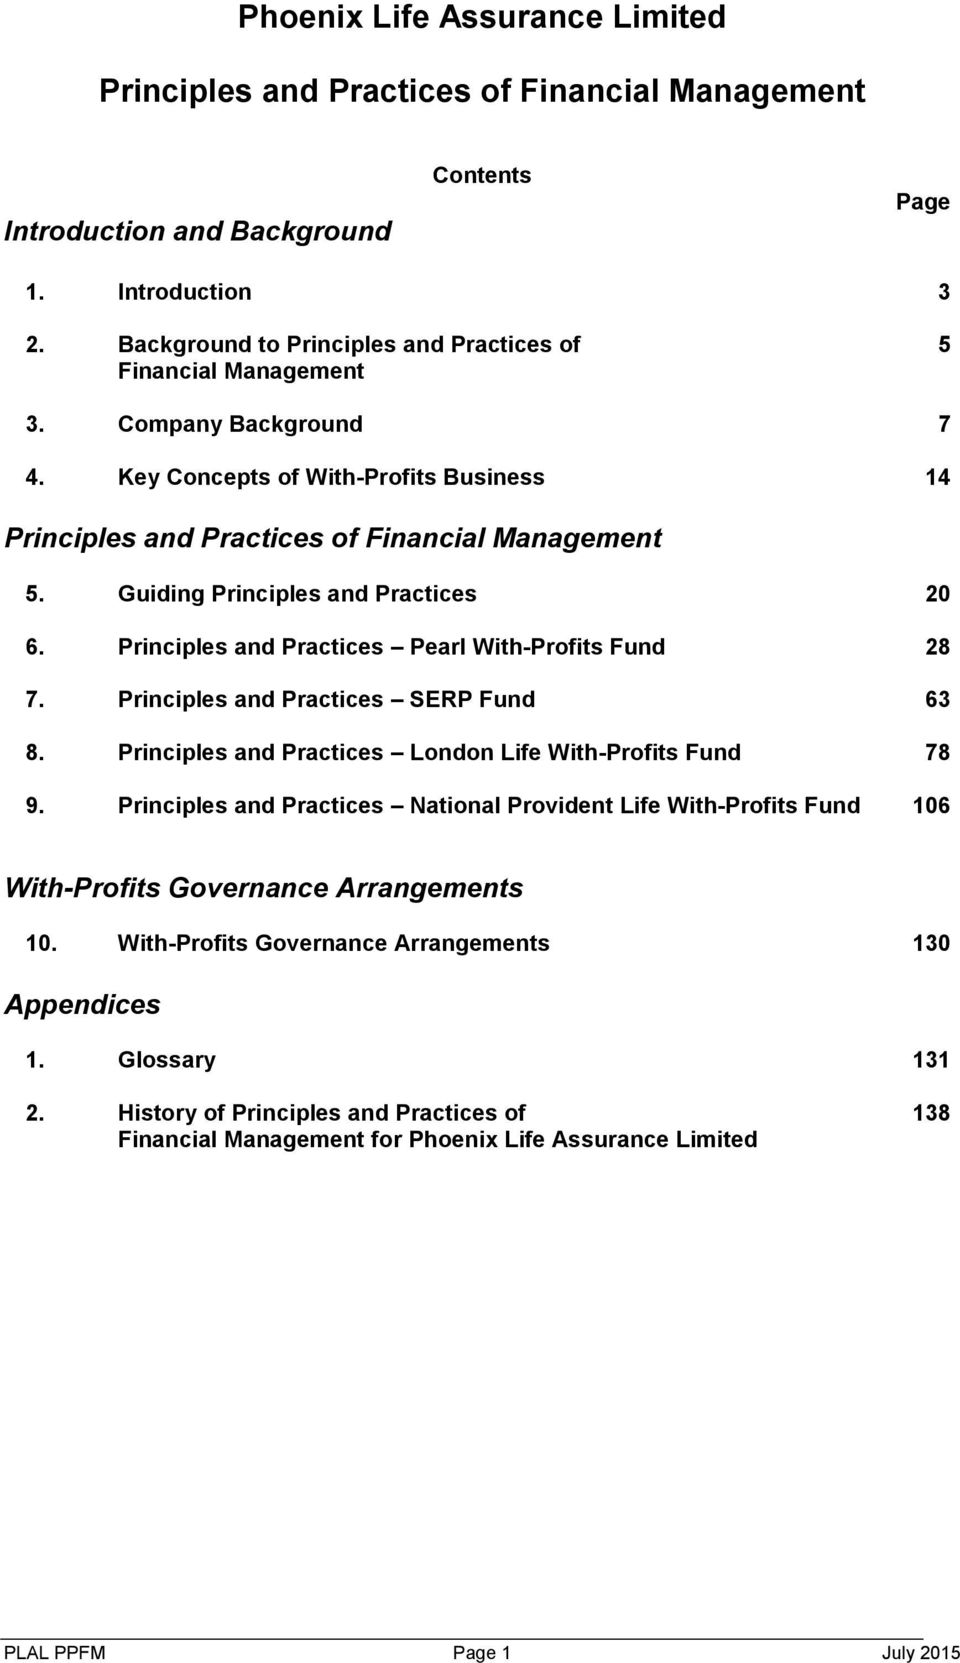 Guiding Principles and Practices 20 6. Principles and Practices Pearl With-Profits Fund 28 7. Principles and Practices SERP Fund 63 8. Principles and Practices London Life With-Profits Fund 78 9.